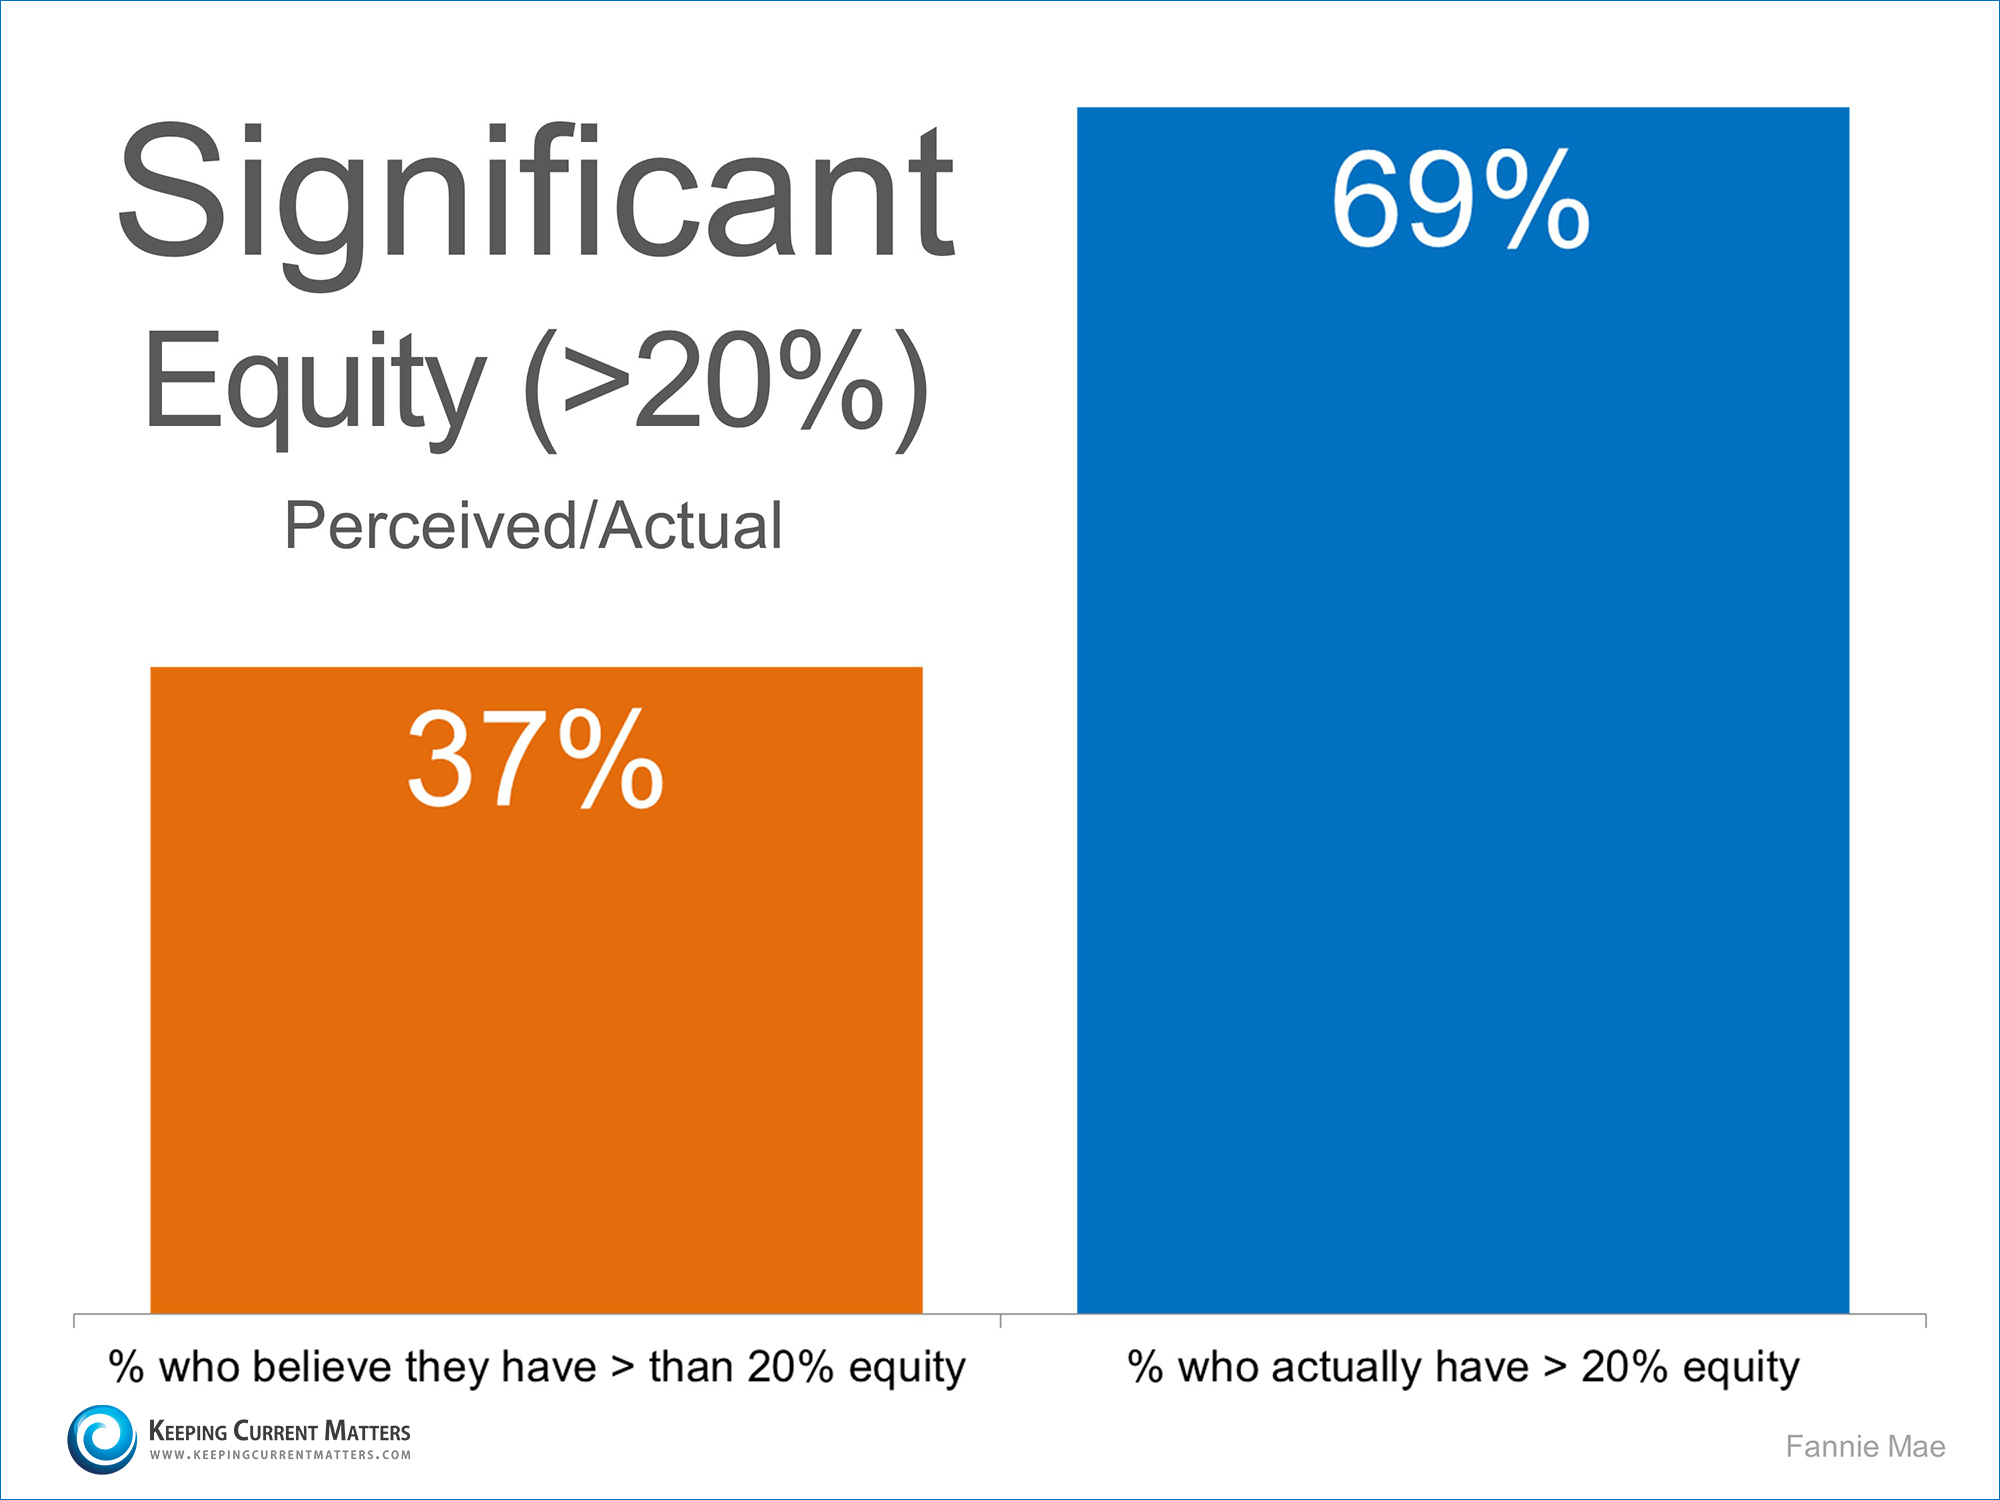 Significant Equity | Keeping Current Matters